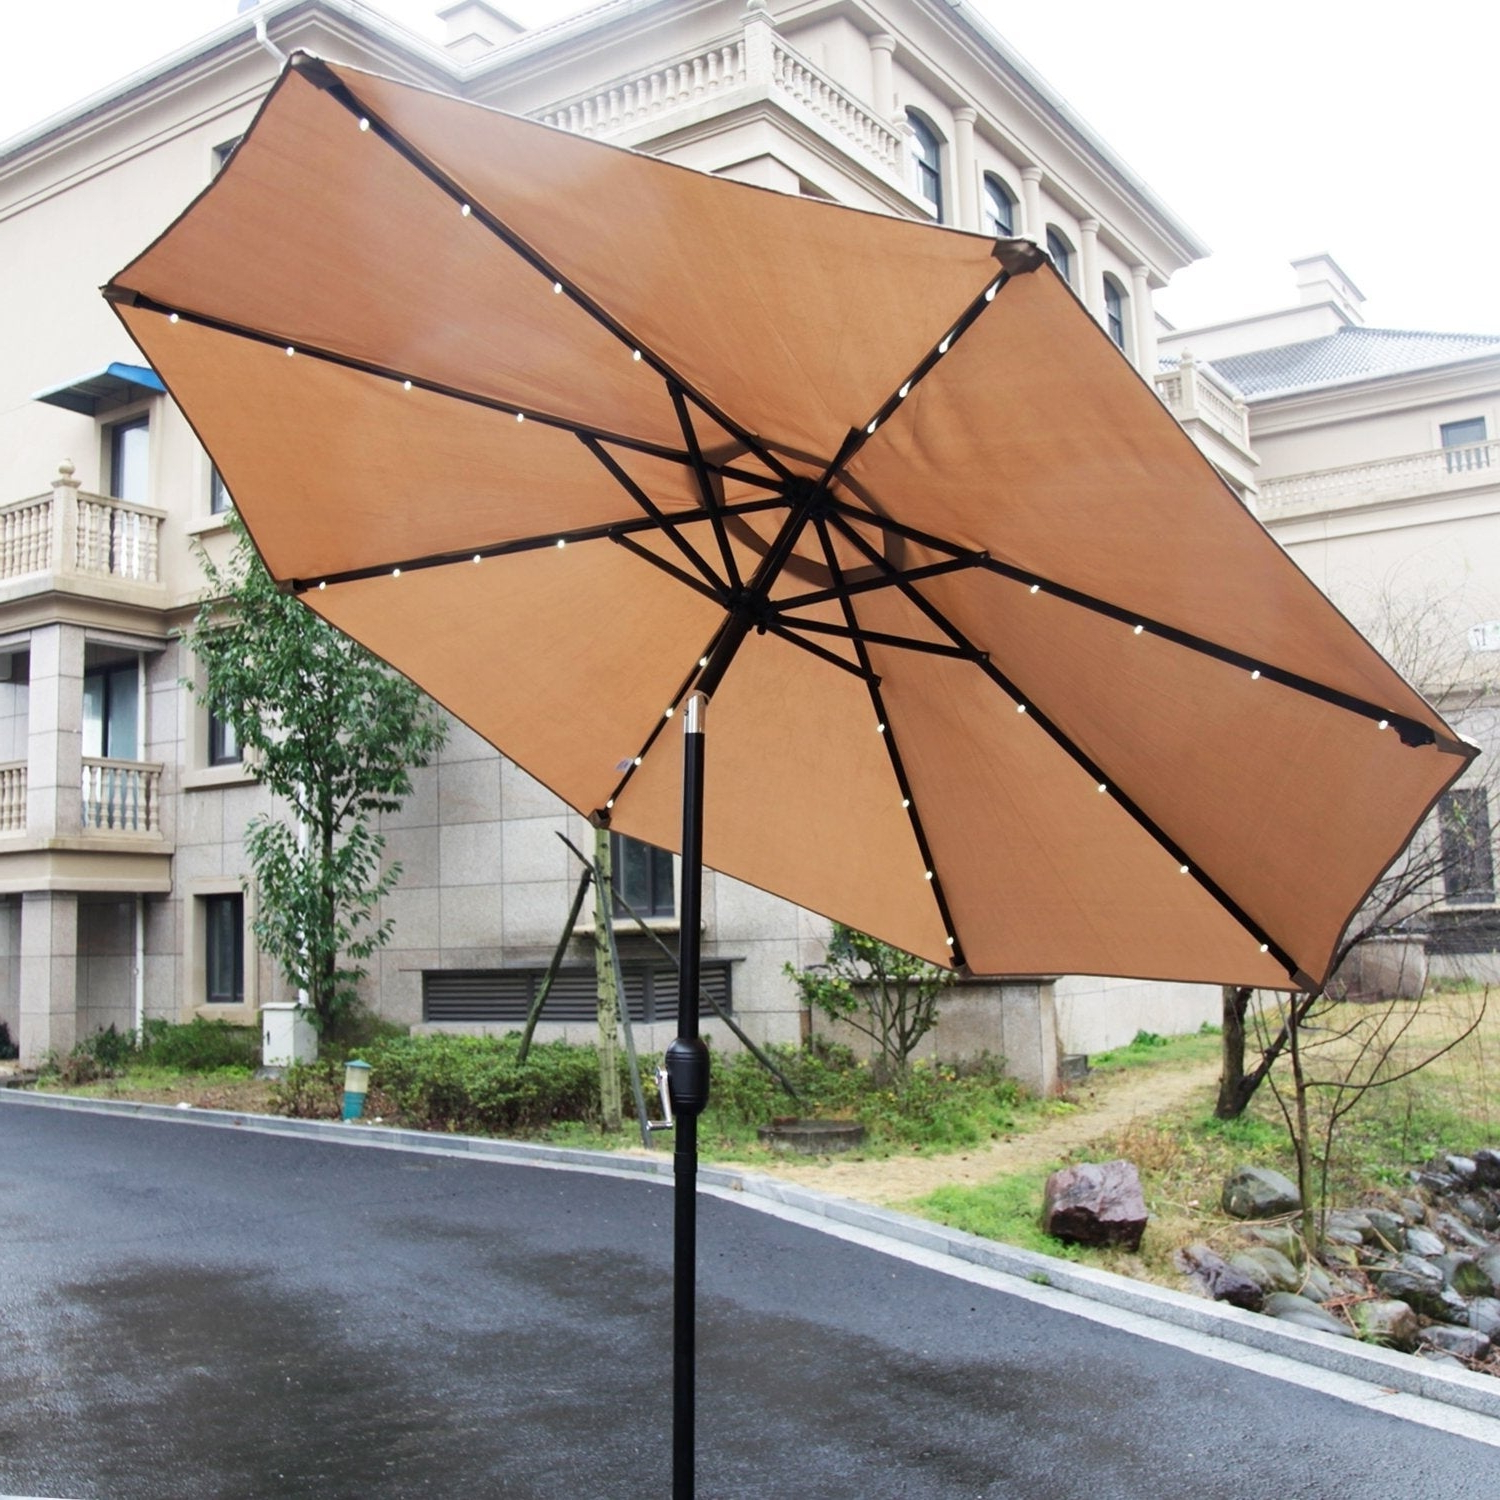 Well Liked Venice Lighted Umbrellas Intended For Kinbor 9Ft Patio Umbrella Led Lighted Hanging Umbrella Solar Power Table  Market Umbrella (View 19 of 20)